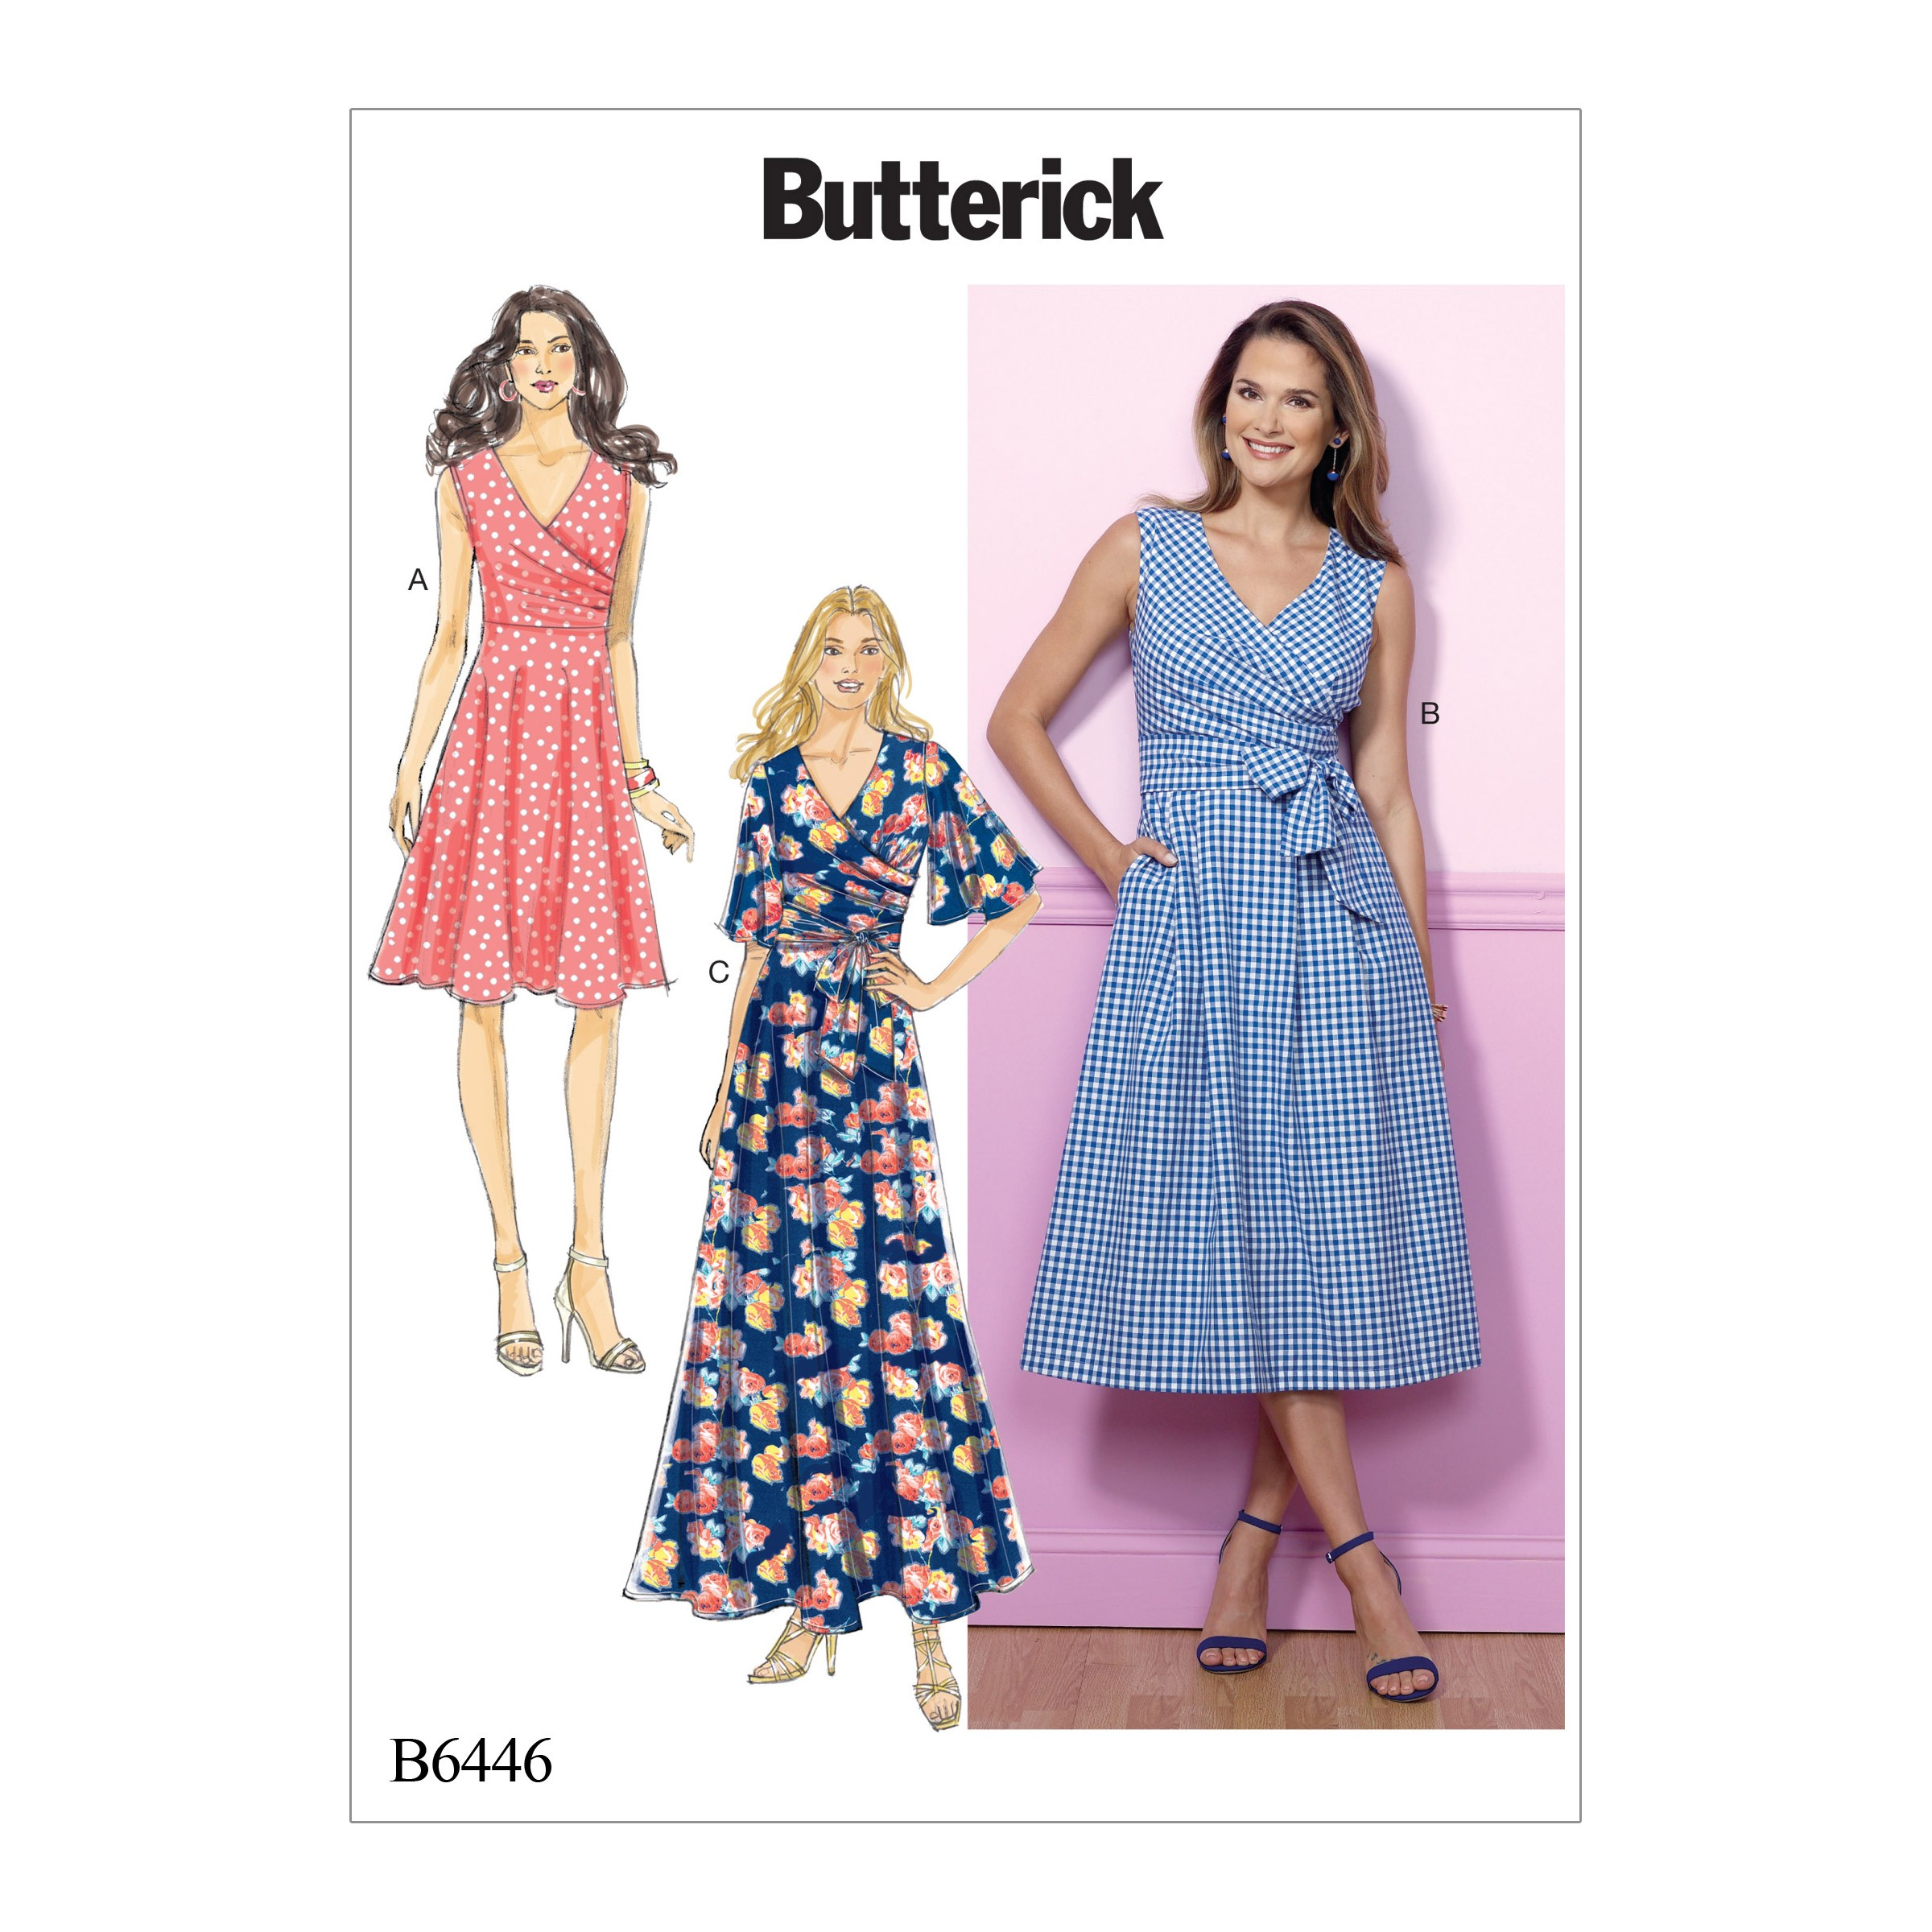 Butterick Sewing Pattern 6446 Misses' Pleated Wrap Dress with Sash